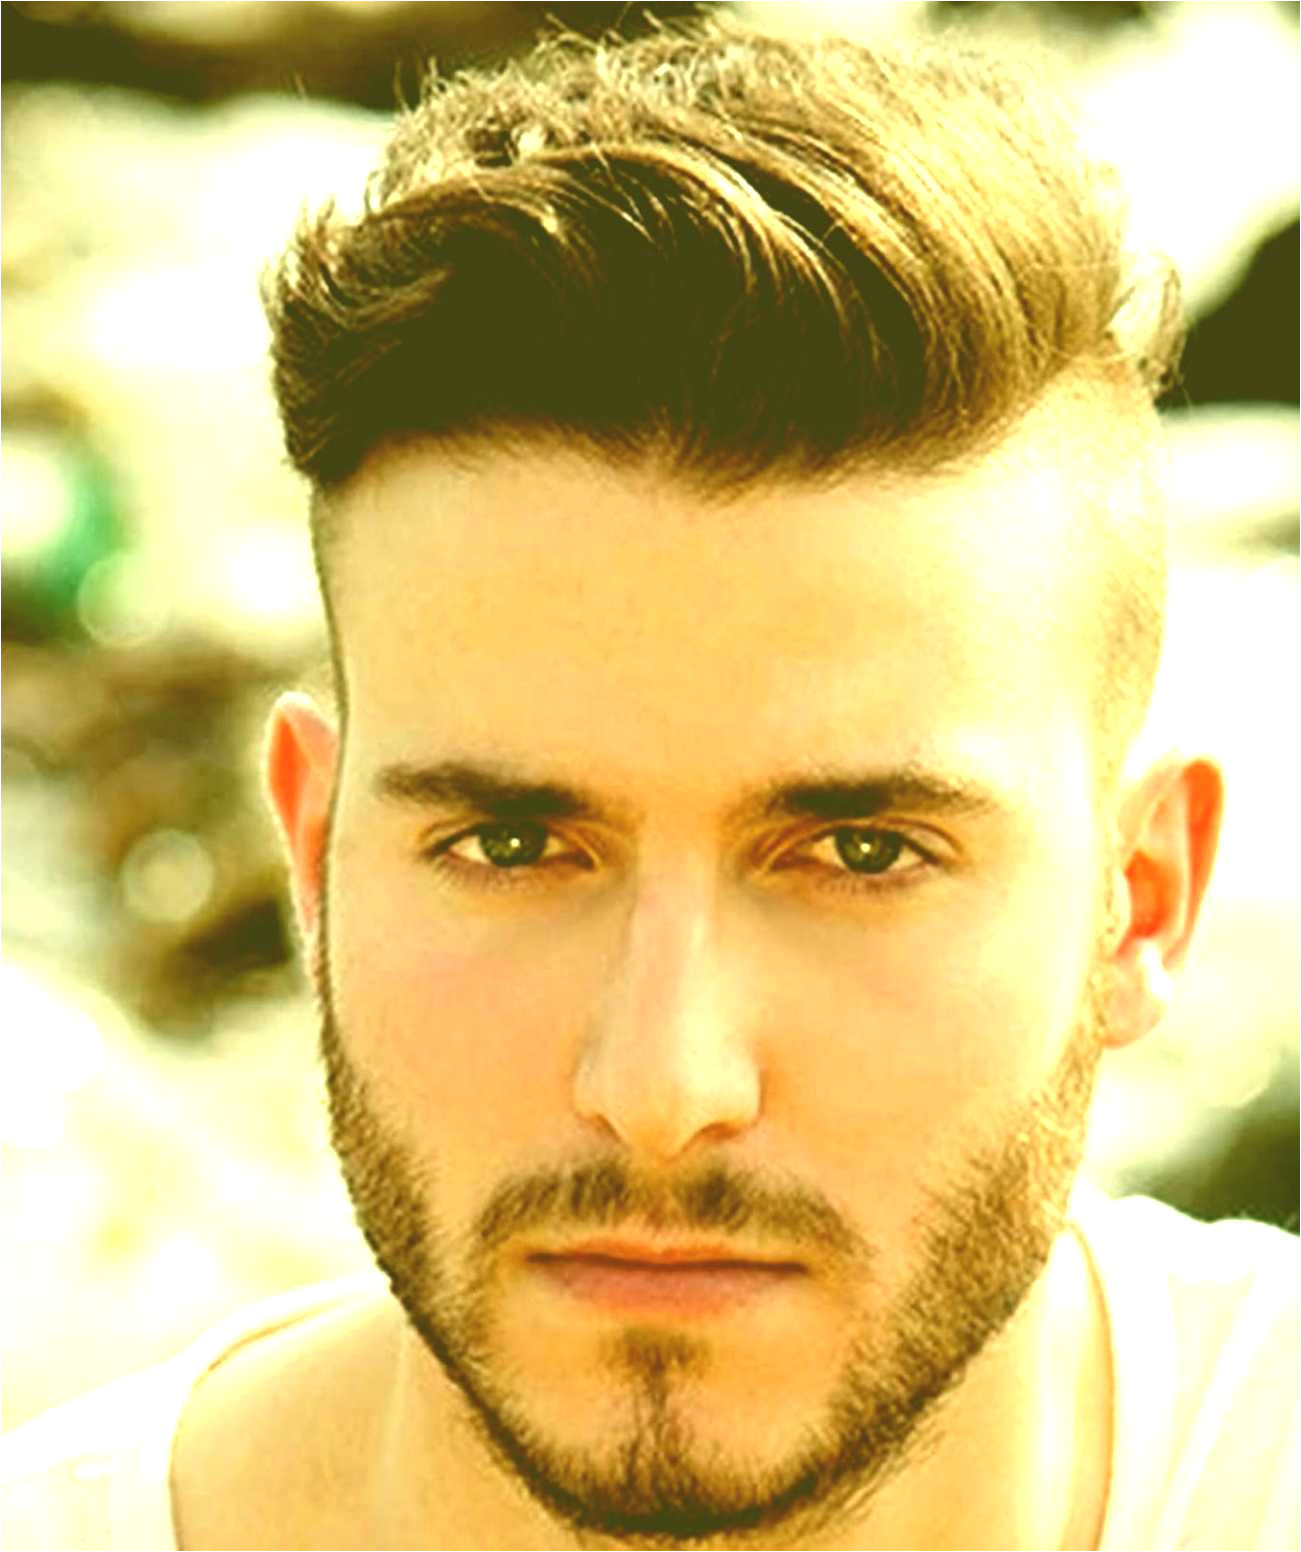 Short Hairstyles Guys Like top Haircuts for Men Short Hairstyles for Men New Hairstyles Men 0d